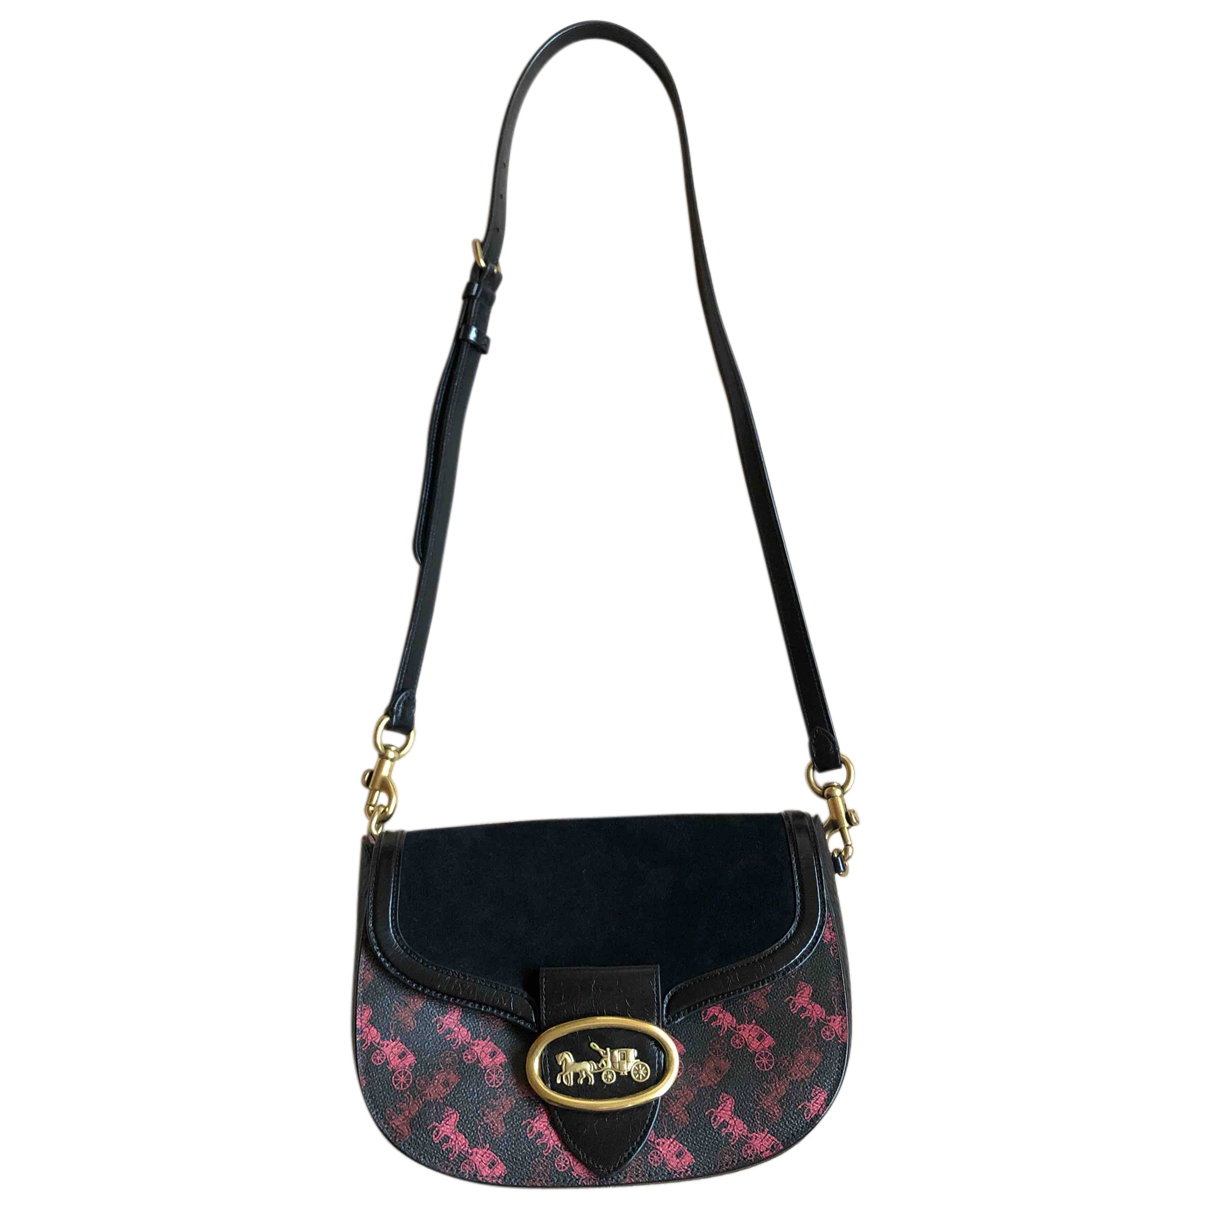 Coach N Black Suede handbag for Women N